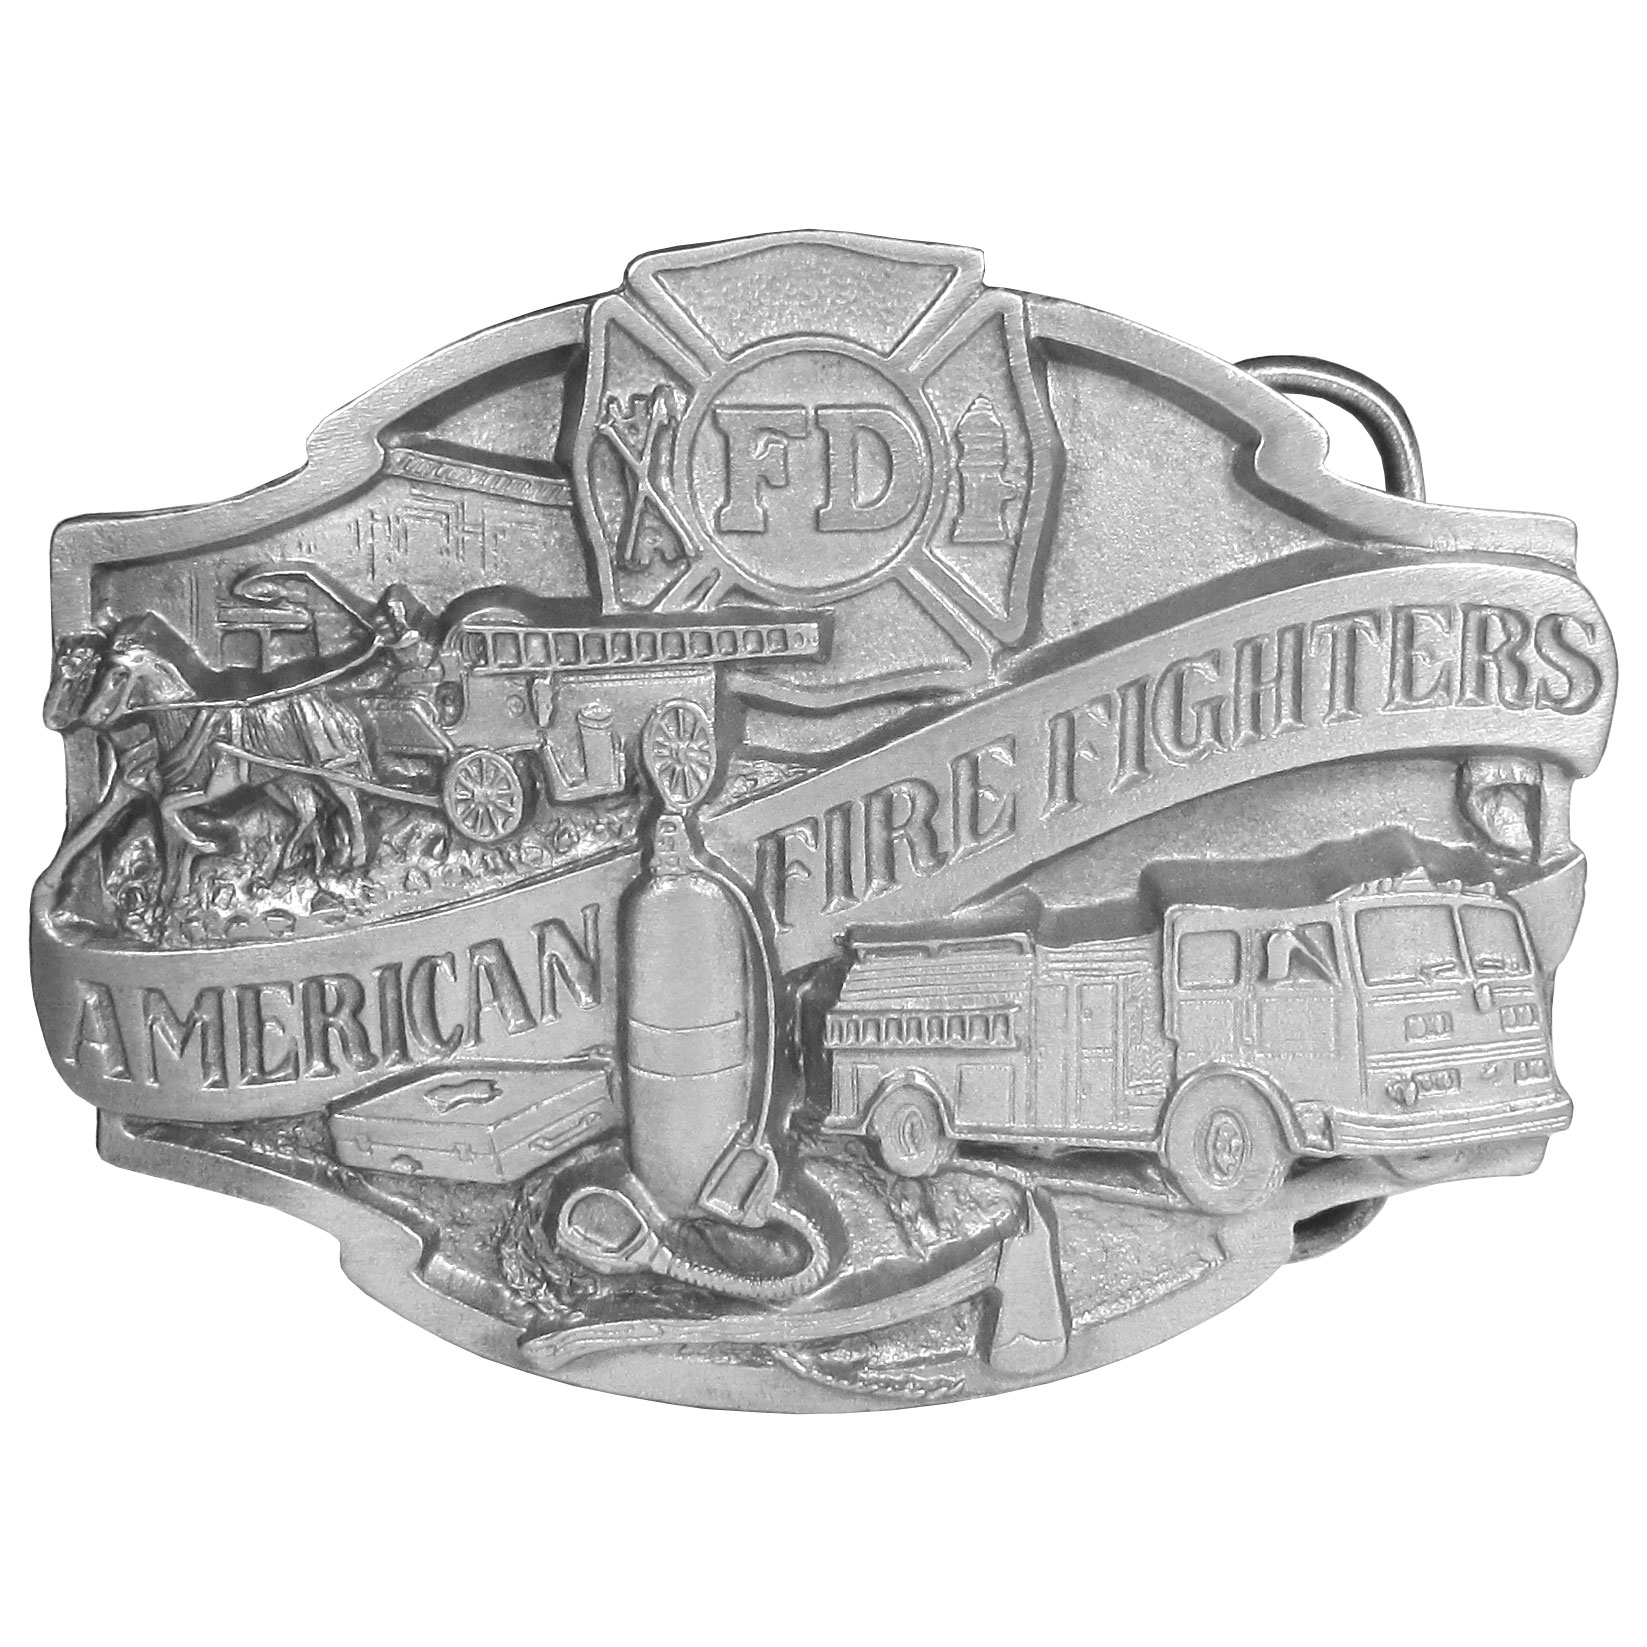 "American Firefighter Antiqued Belt Buckle - This belt buckle is for the American Firefighter! There is an intricately carved fire truck with an oxygen tank, pickaxe, an old fashioned horse drawn fire truck and the Fire Department symbol. On the back are the words, ""American Fire Fighters... Ever Ready, Ever Willing"". This exquisitely carved buckle is made of a fully cast metal with a standard bale that fits up to 2"" belts."